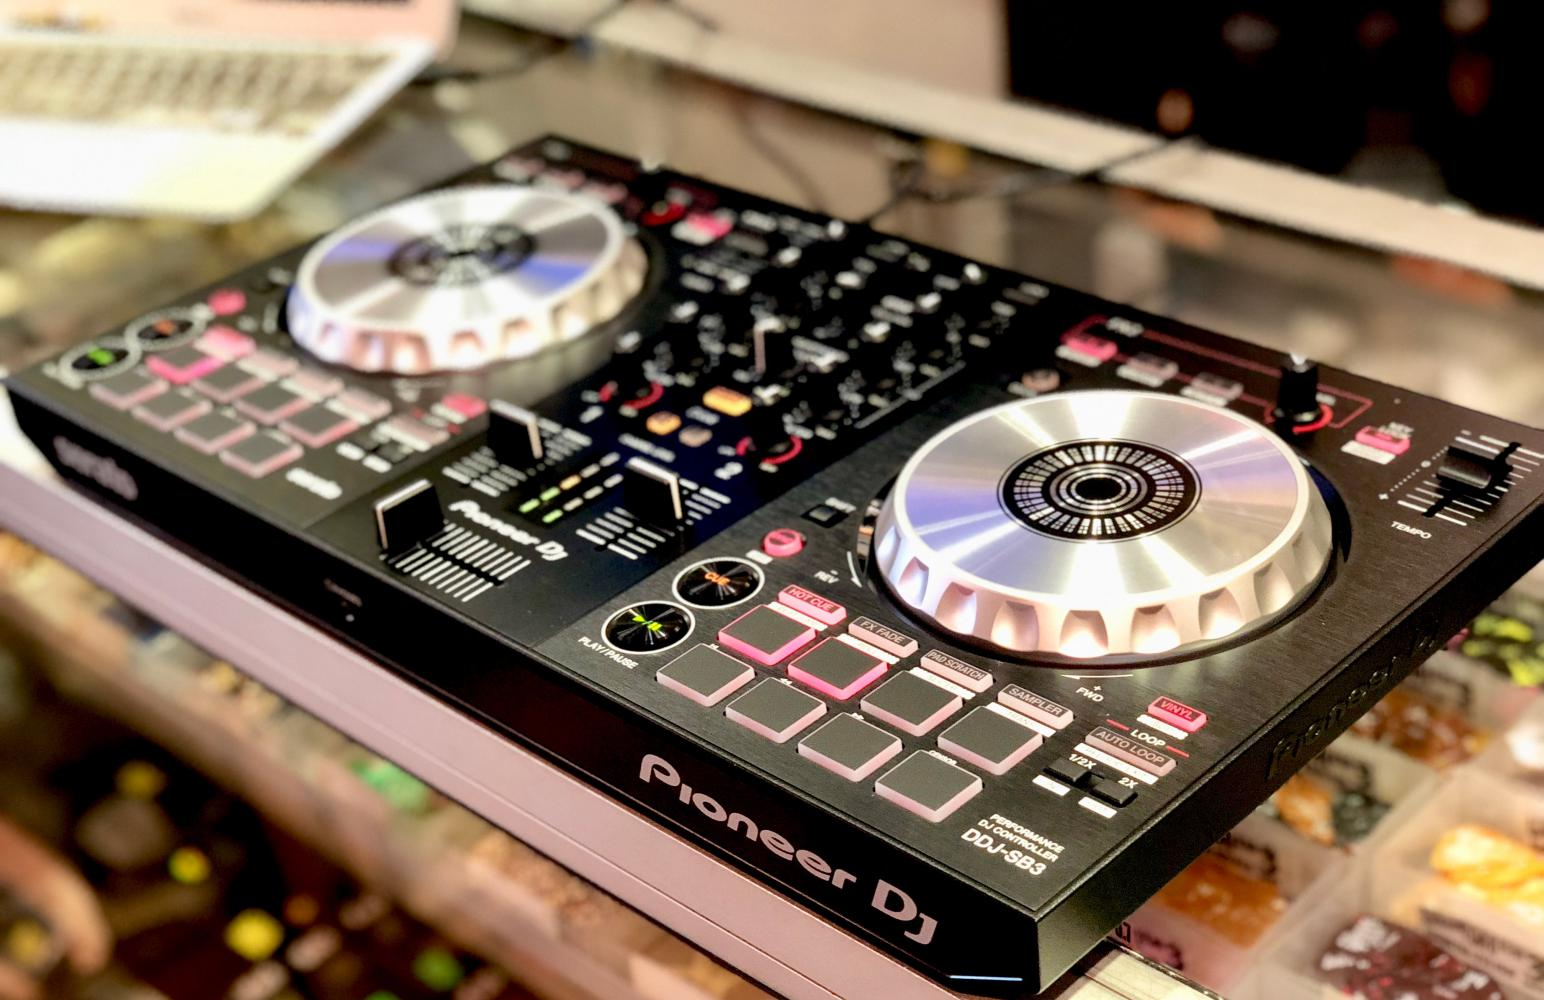 7 Best DJ Controllers for Beginners (Sept  2019) - Reviews